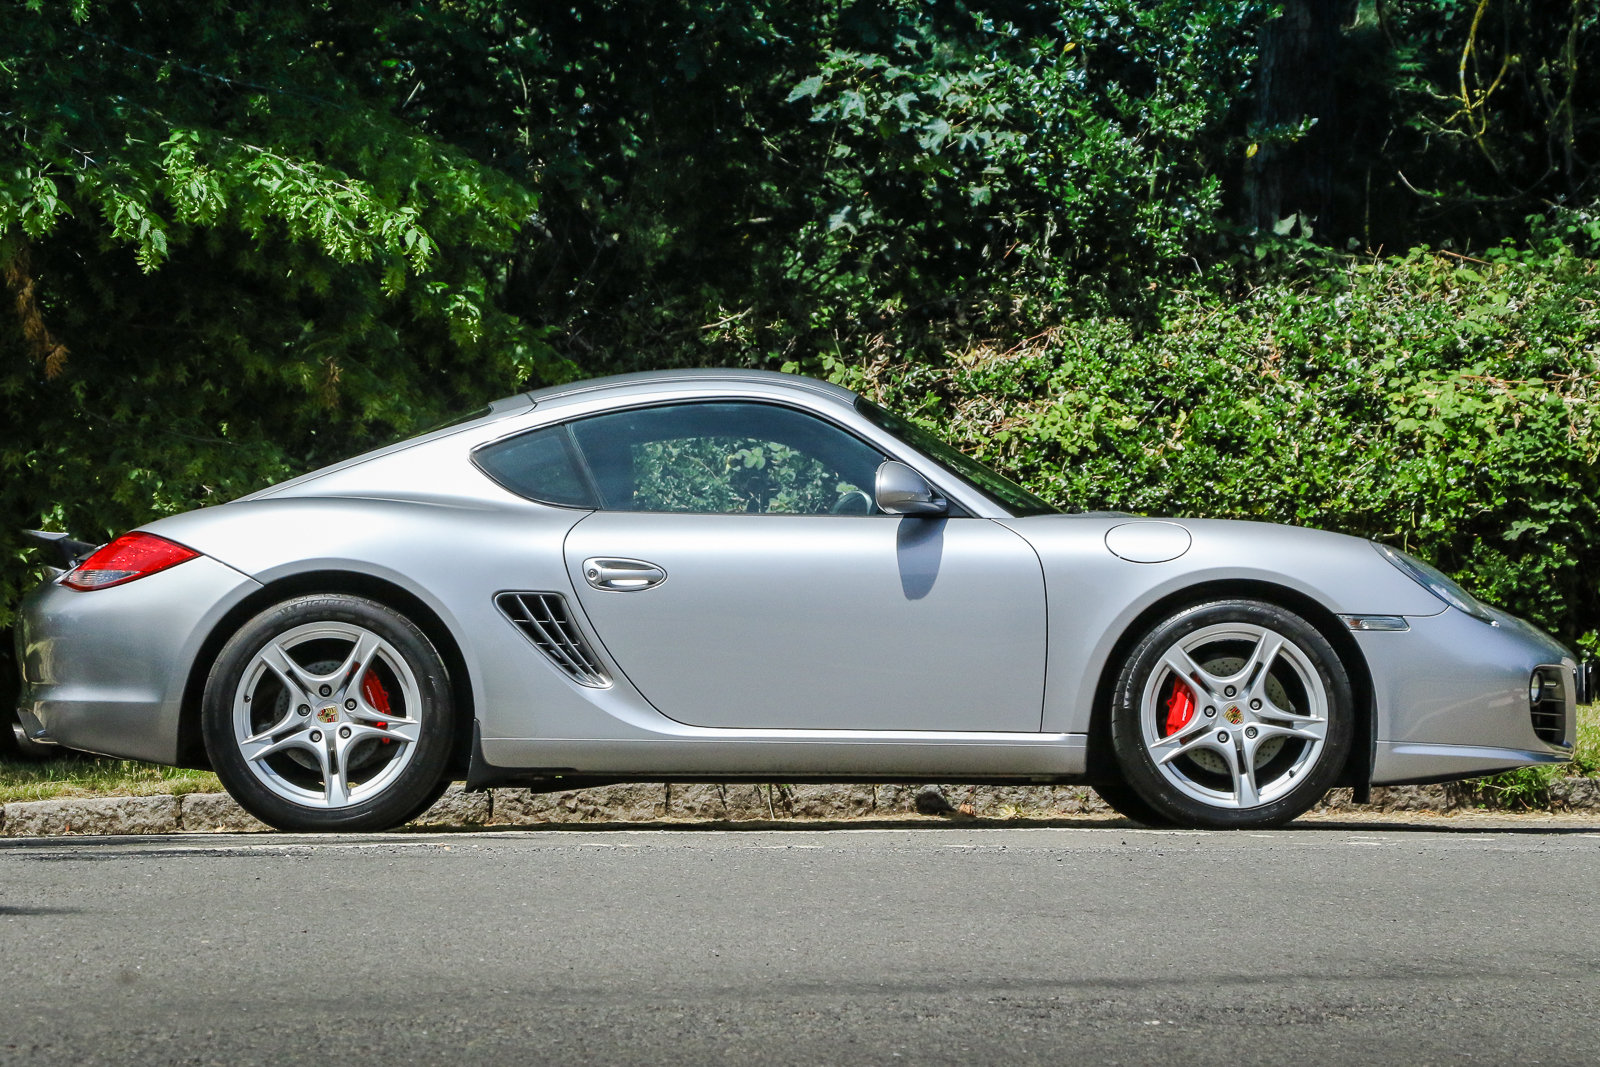 2009 Porsche Cayman S 987.2 Gen 2 GT Silver Metallic PASM For Sale (picture 3 of 6)